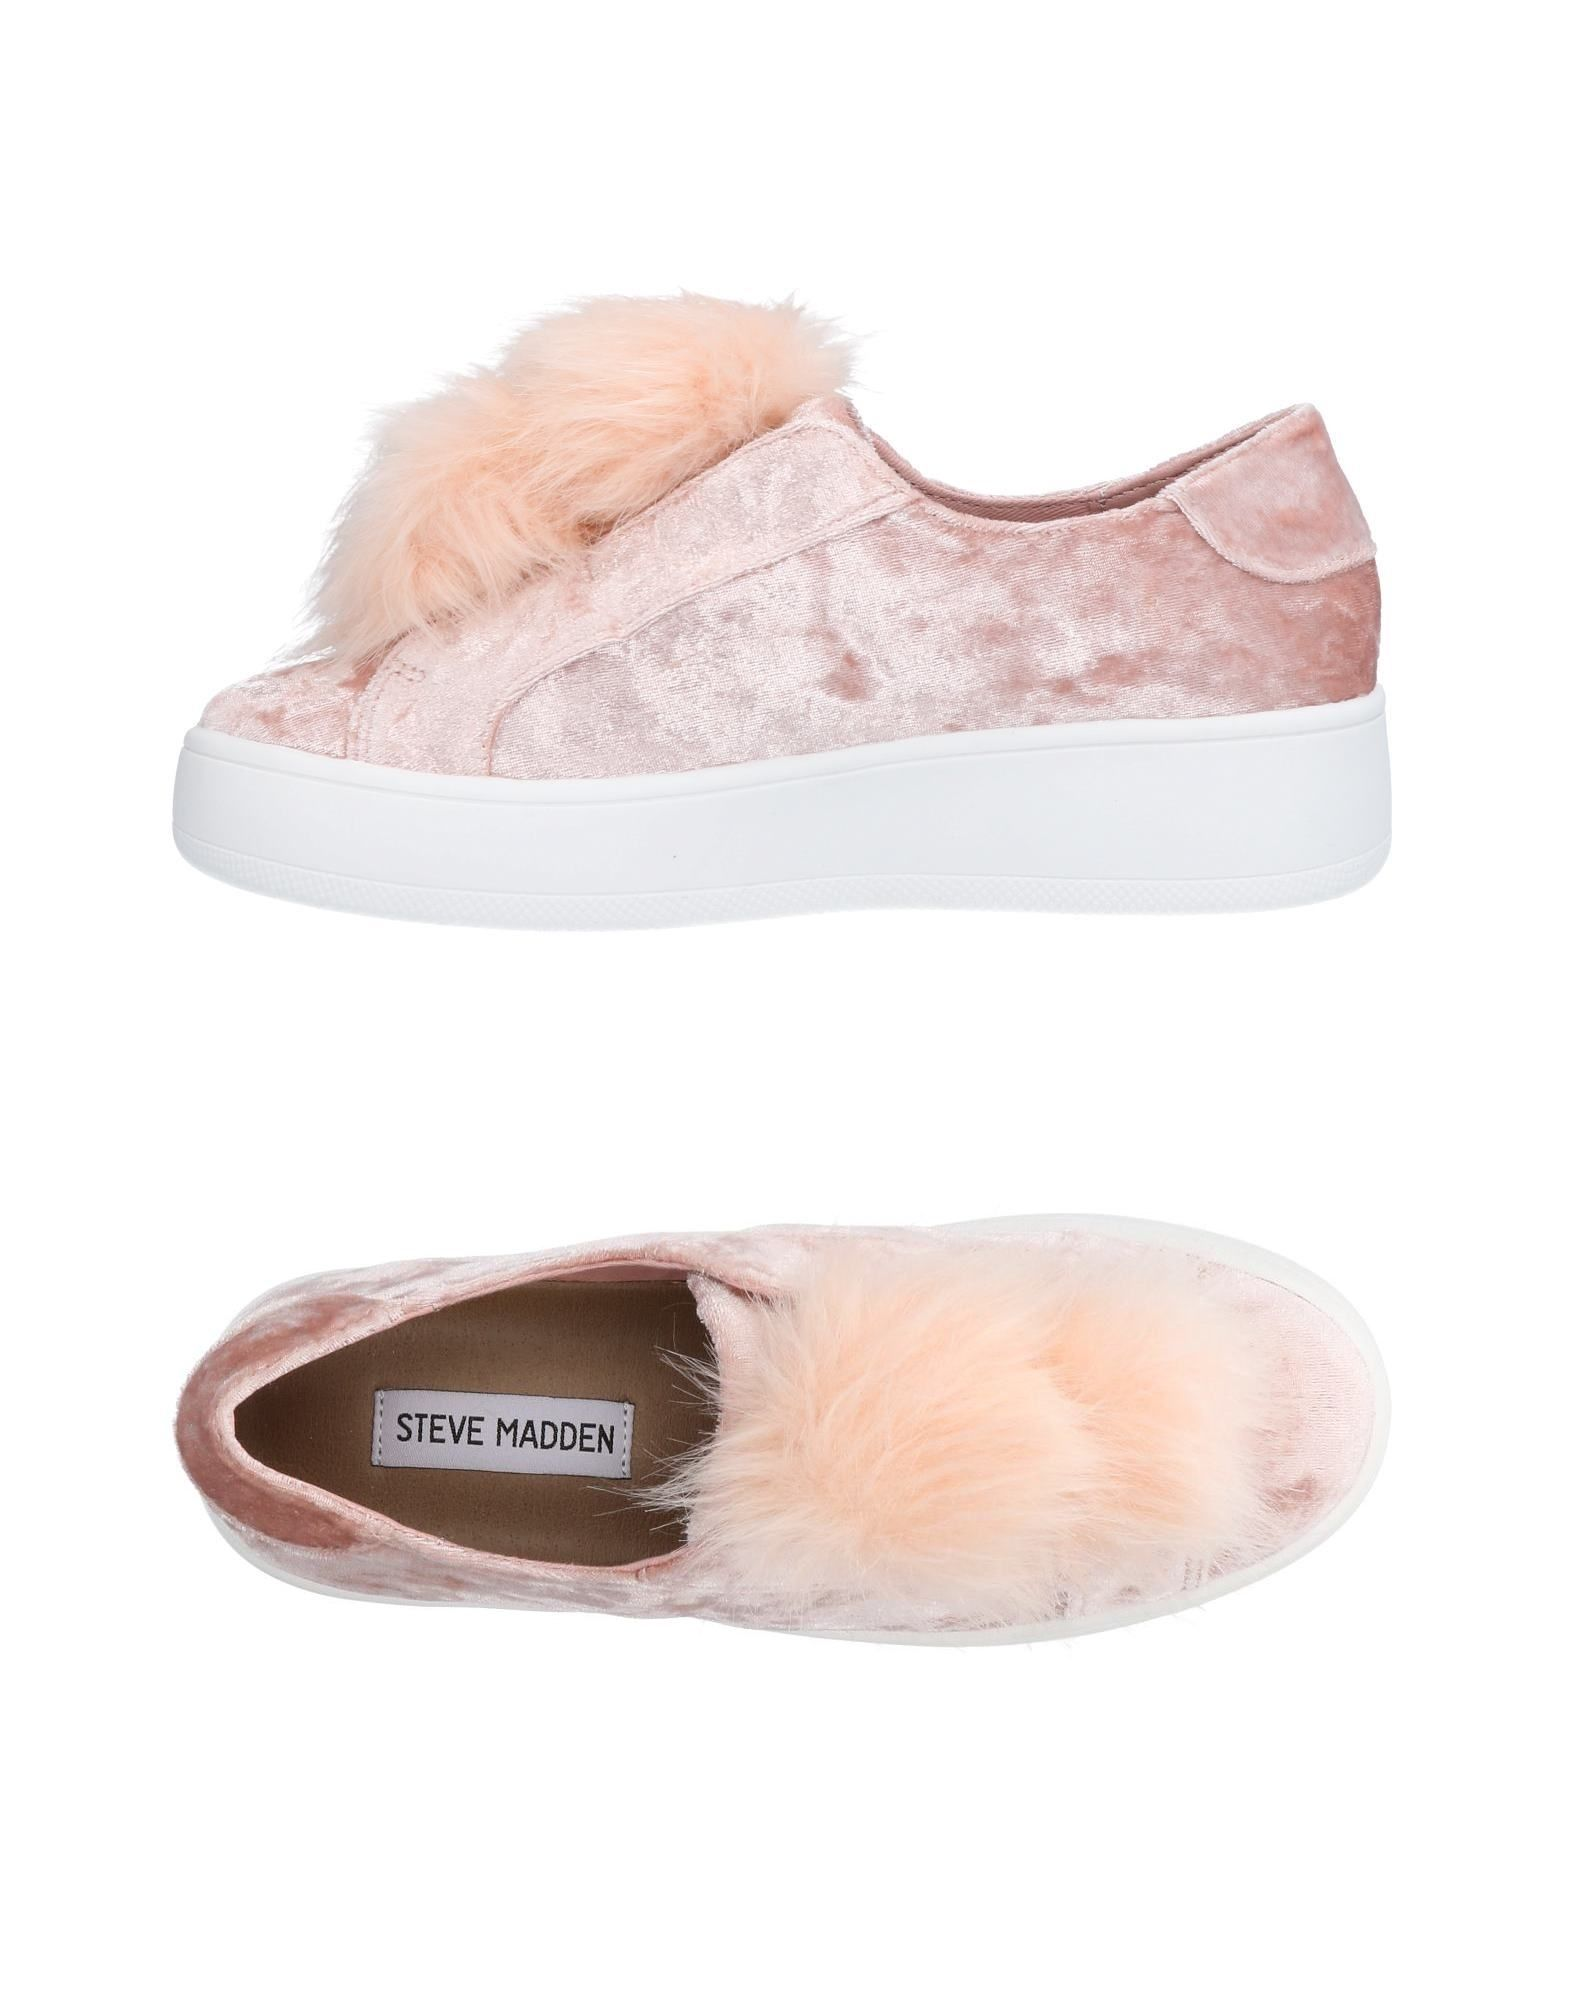 Sneakers 11472247NX Steve Madden Donna - 11472247NX Sneakers bd8677